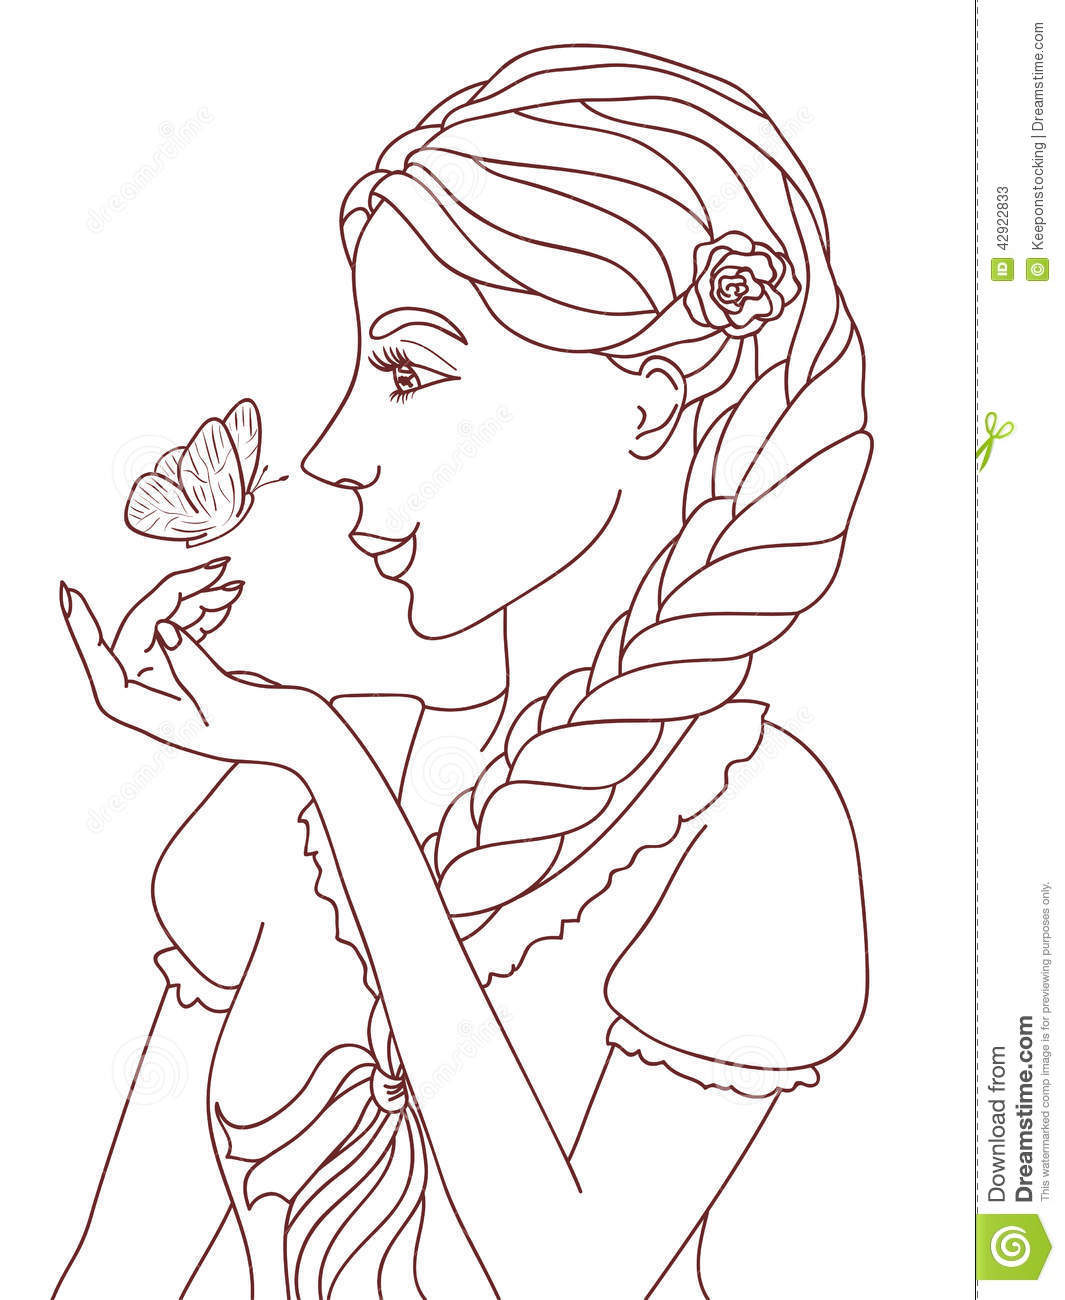 Outlined Illustration Of A Pretty Smiling Girl With